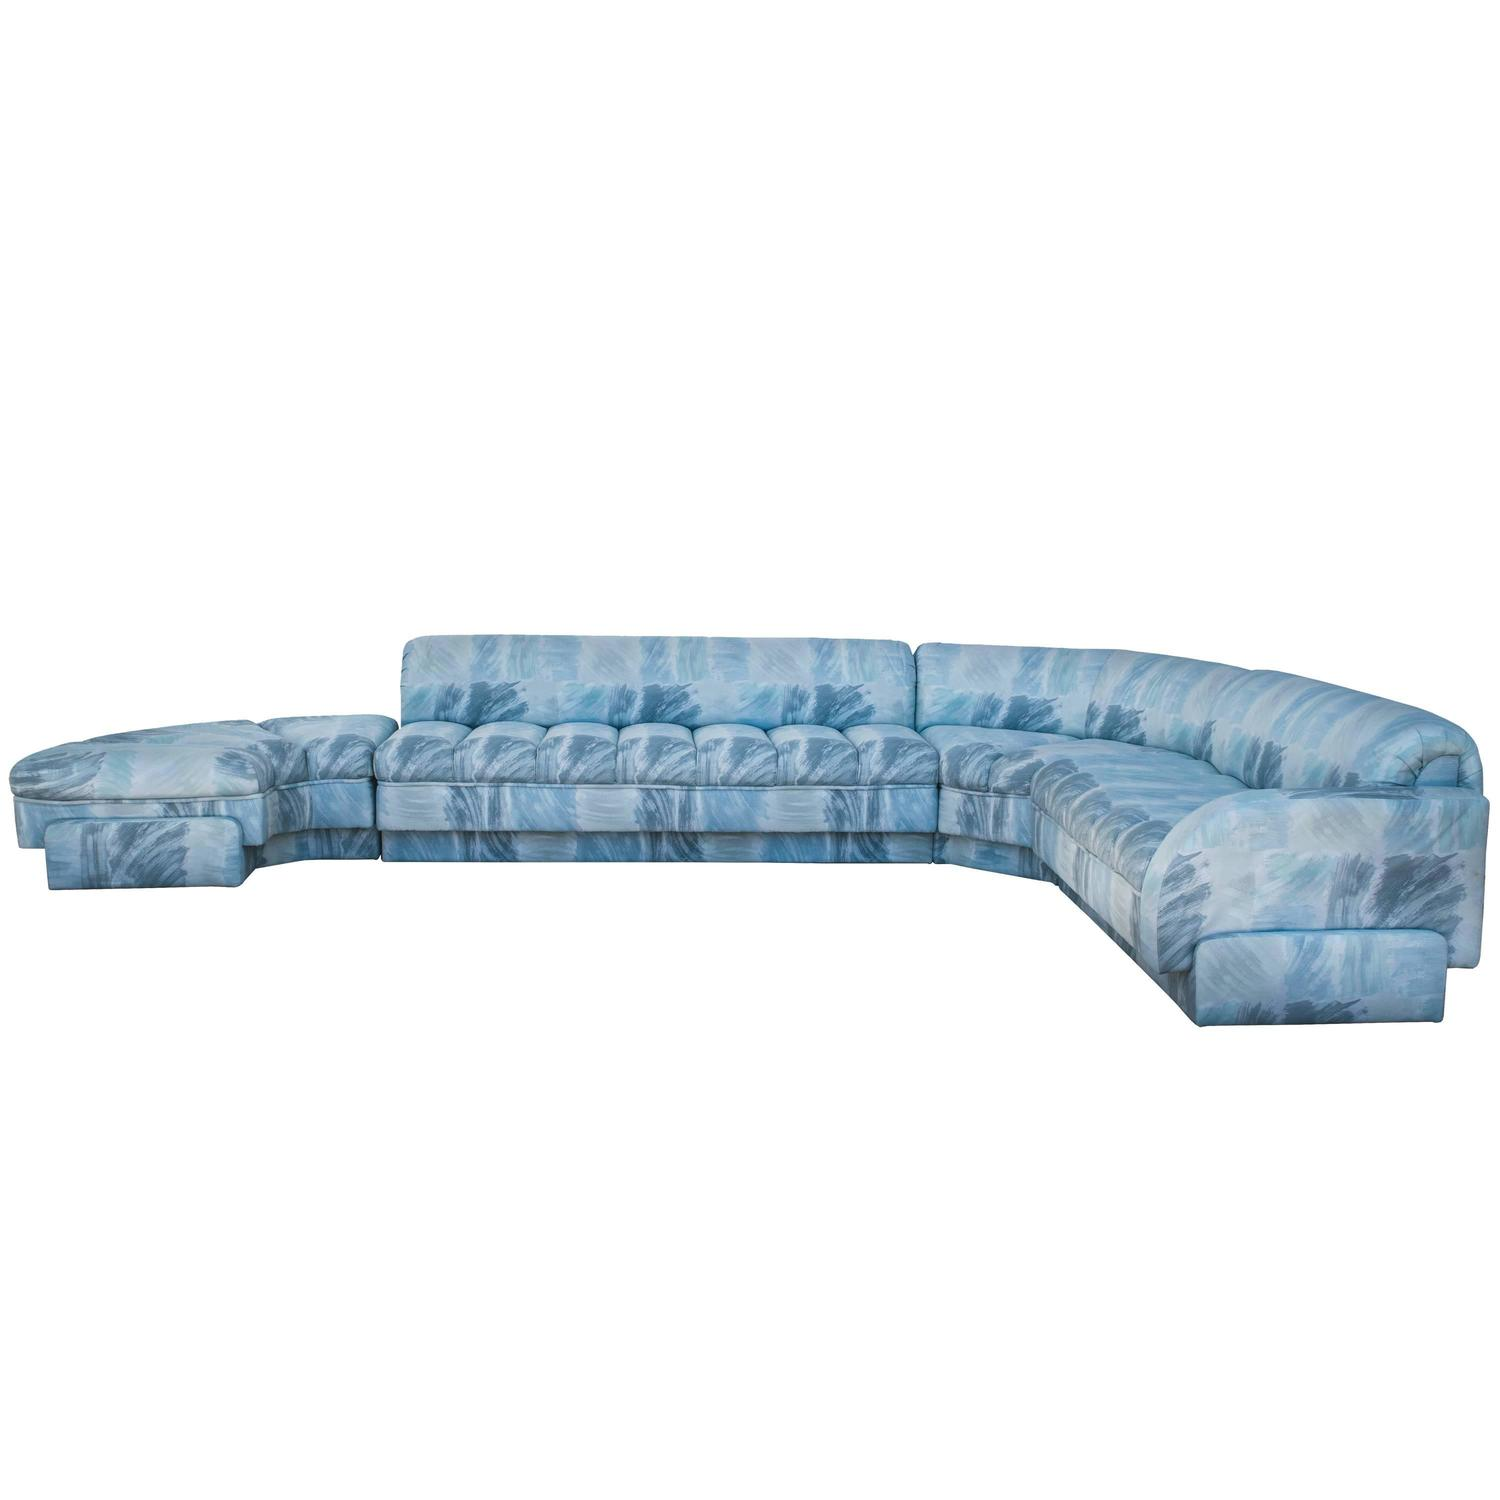 Vladimir Kagan Sectional Sofas 13 For Sale at 1stdibs